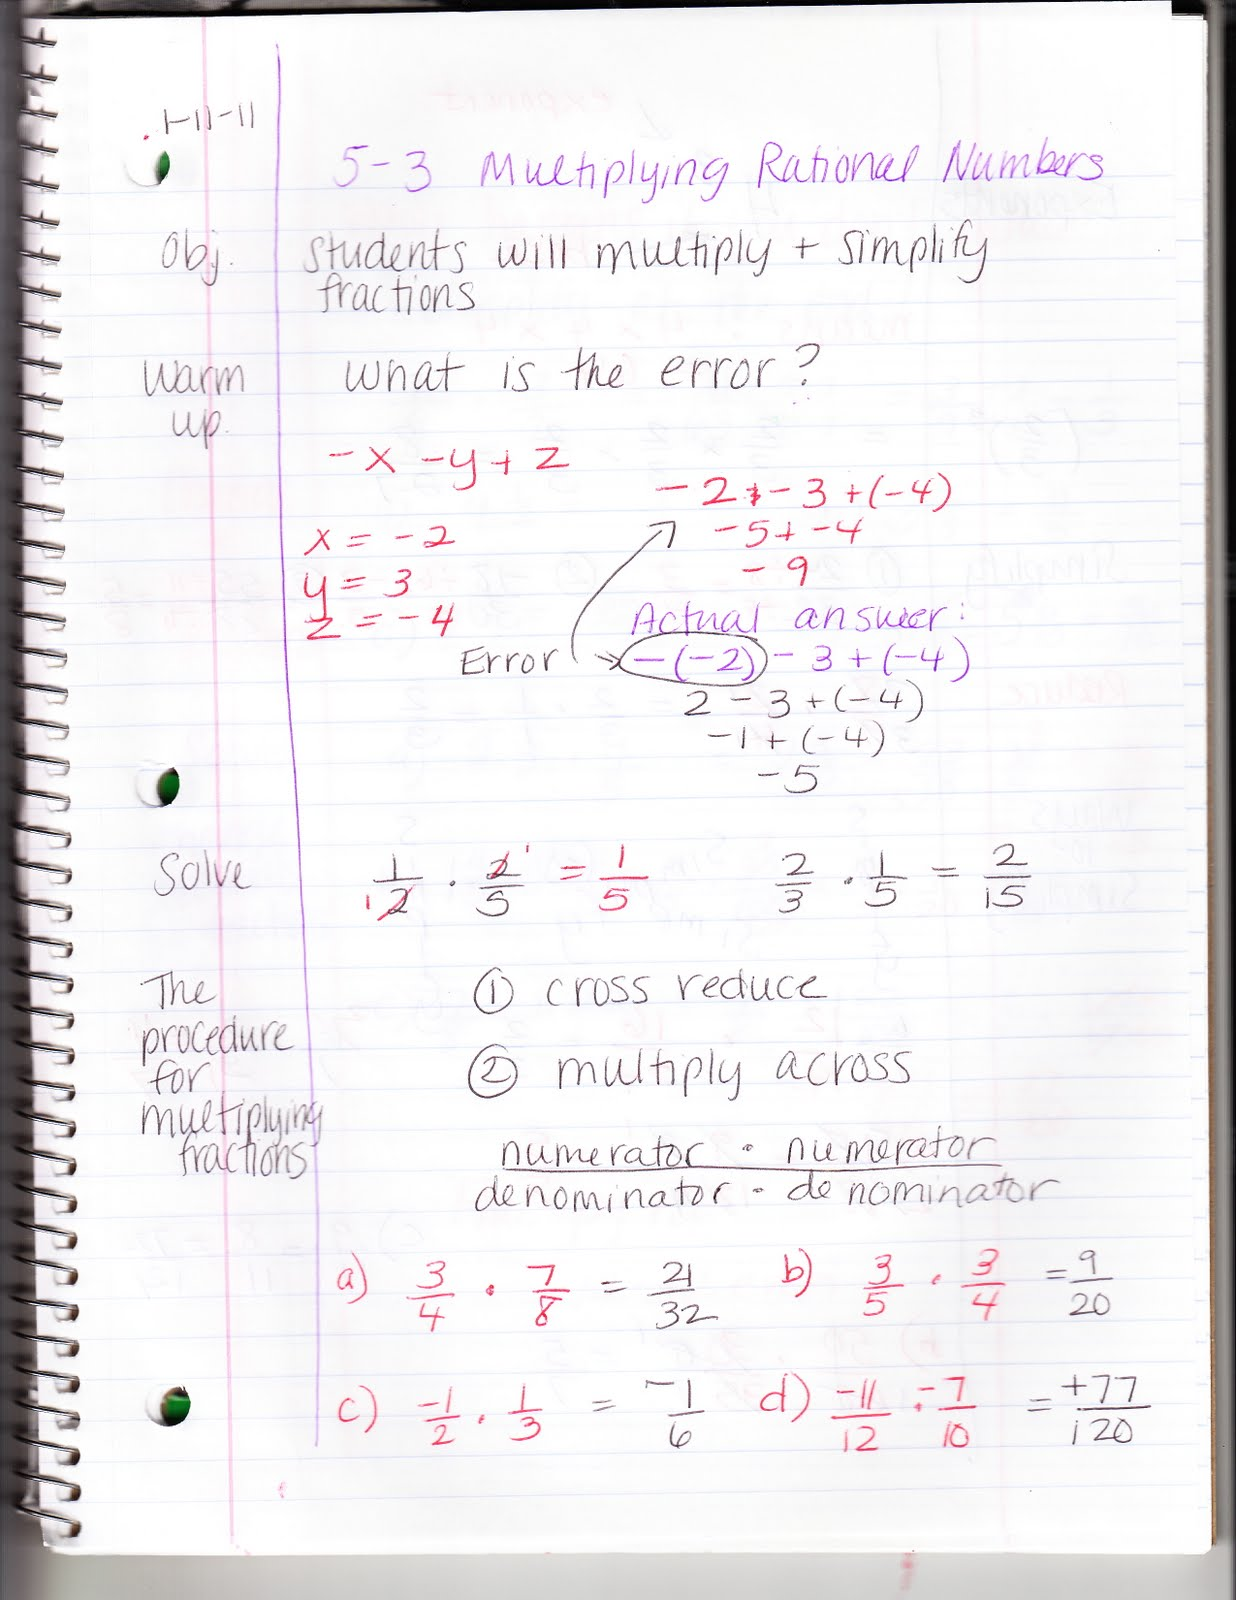 Ms Jean S Algebra Readiness Blog 5 3 Multiplying